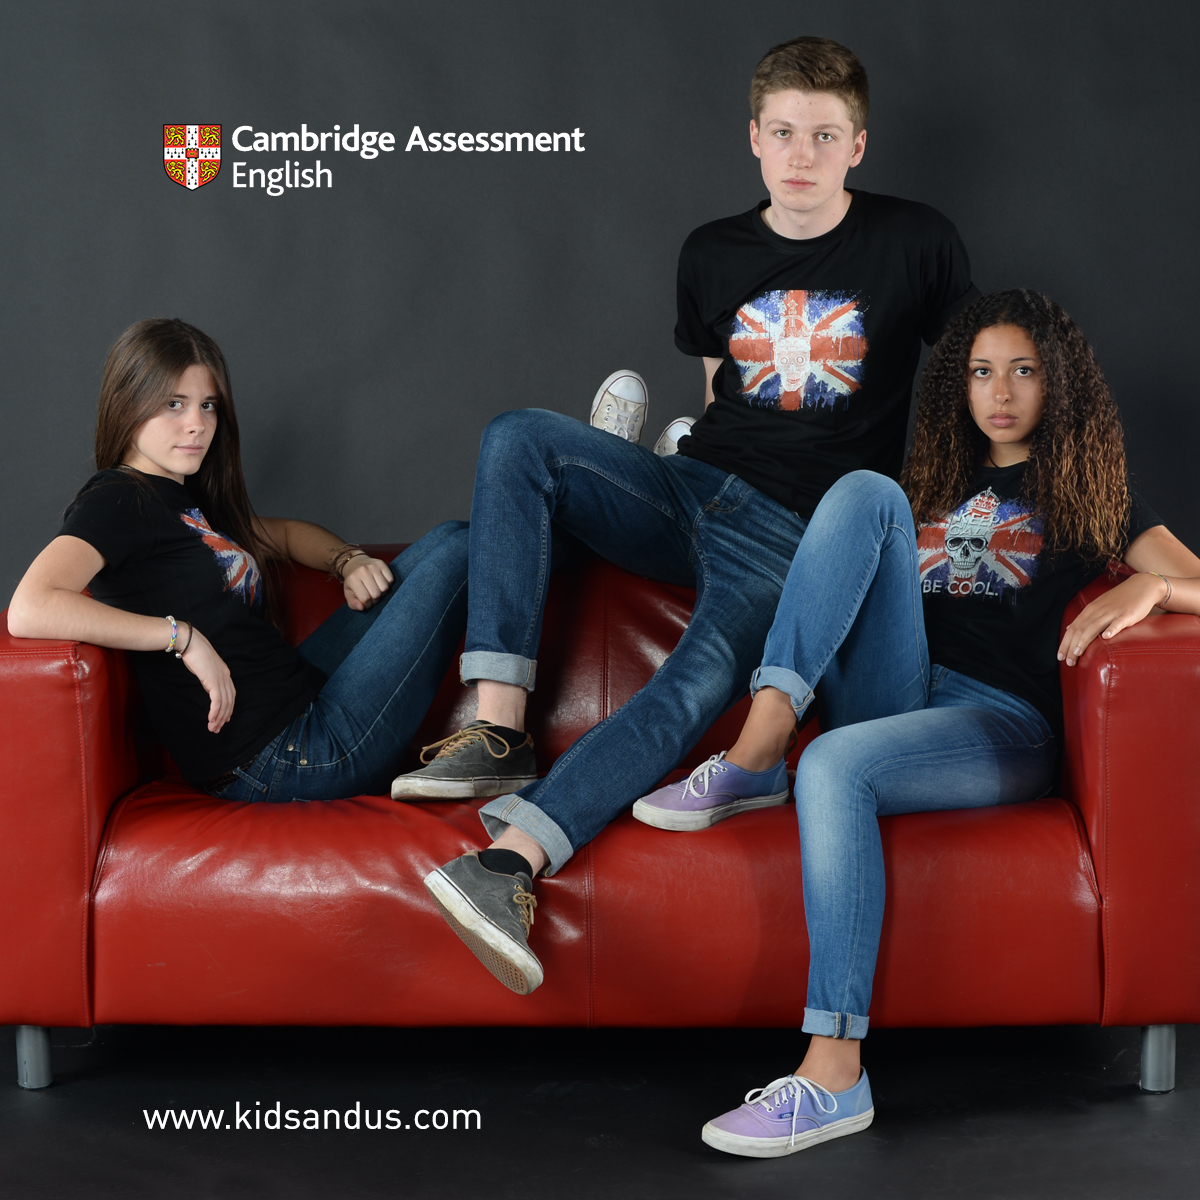 Cambridge English destaca que els alumnes de Kids&Us brillen en les proves de comprensió oral (listening)